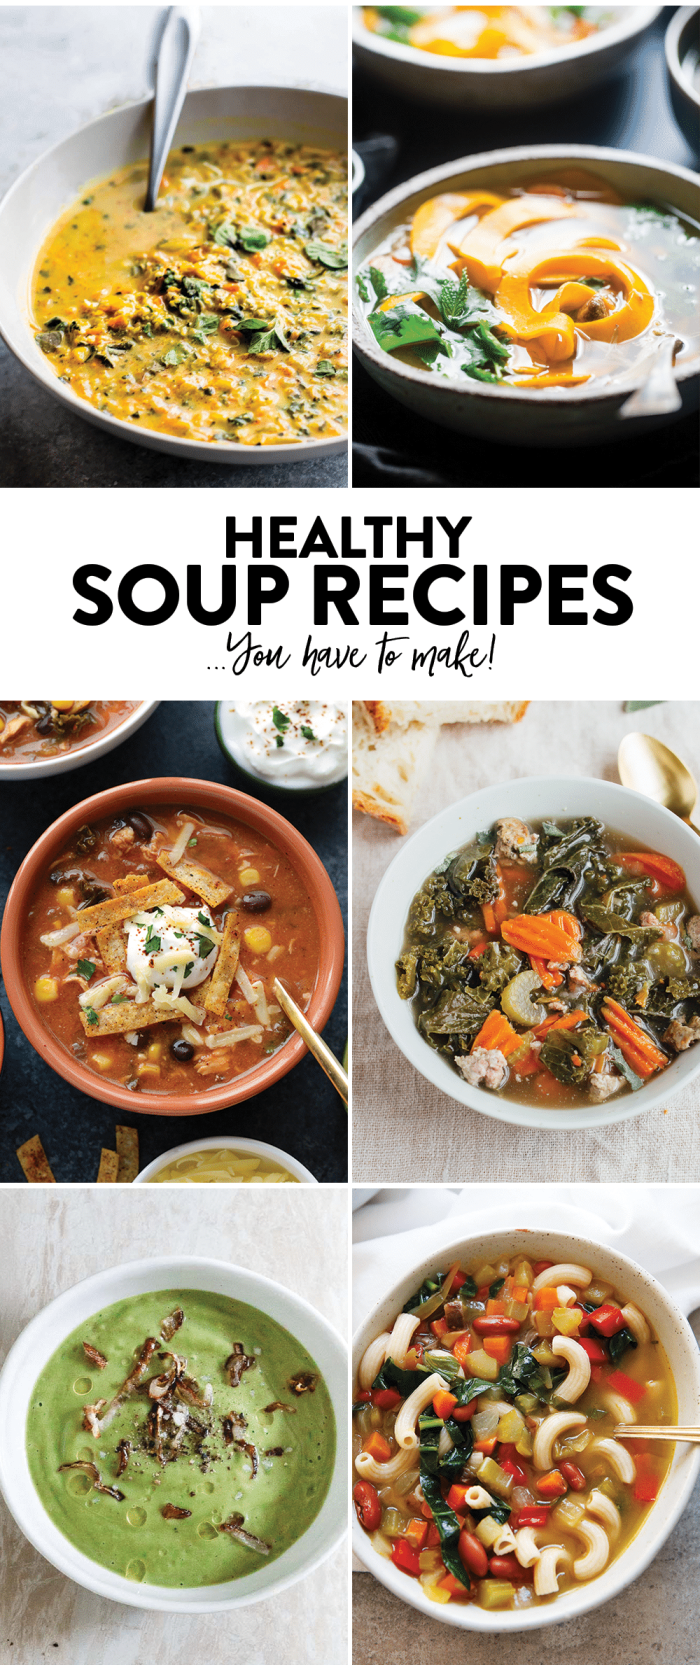 6 healthy soup recipes you have to make. Gluten free and full of nourishment! | CotterCrunch.com